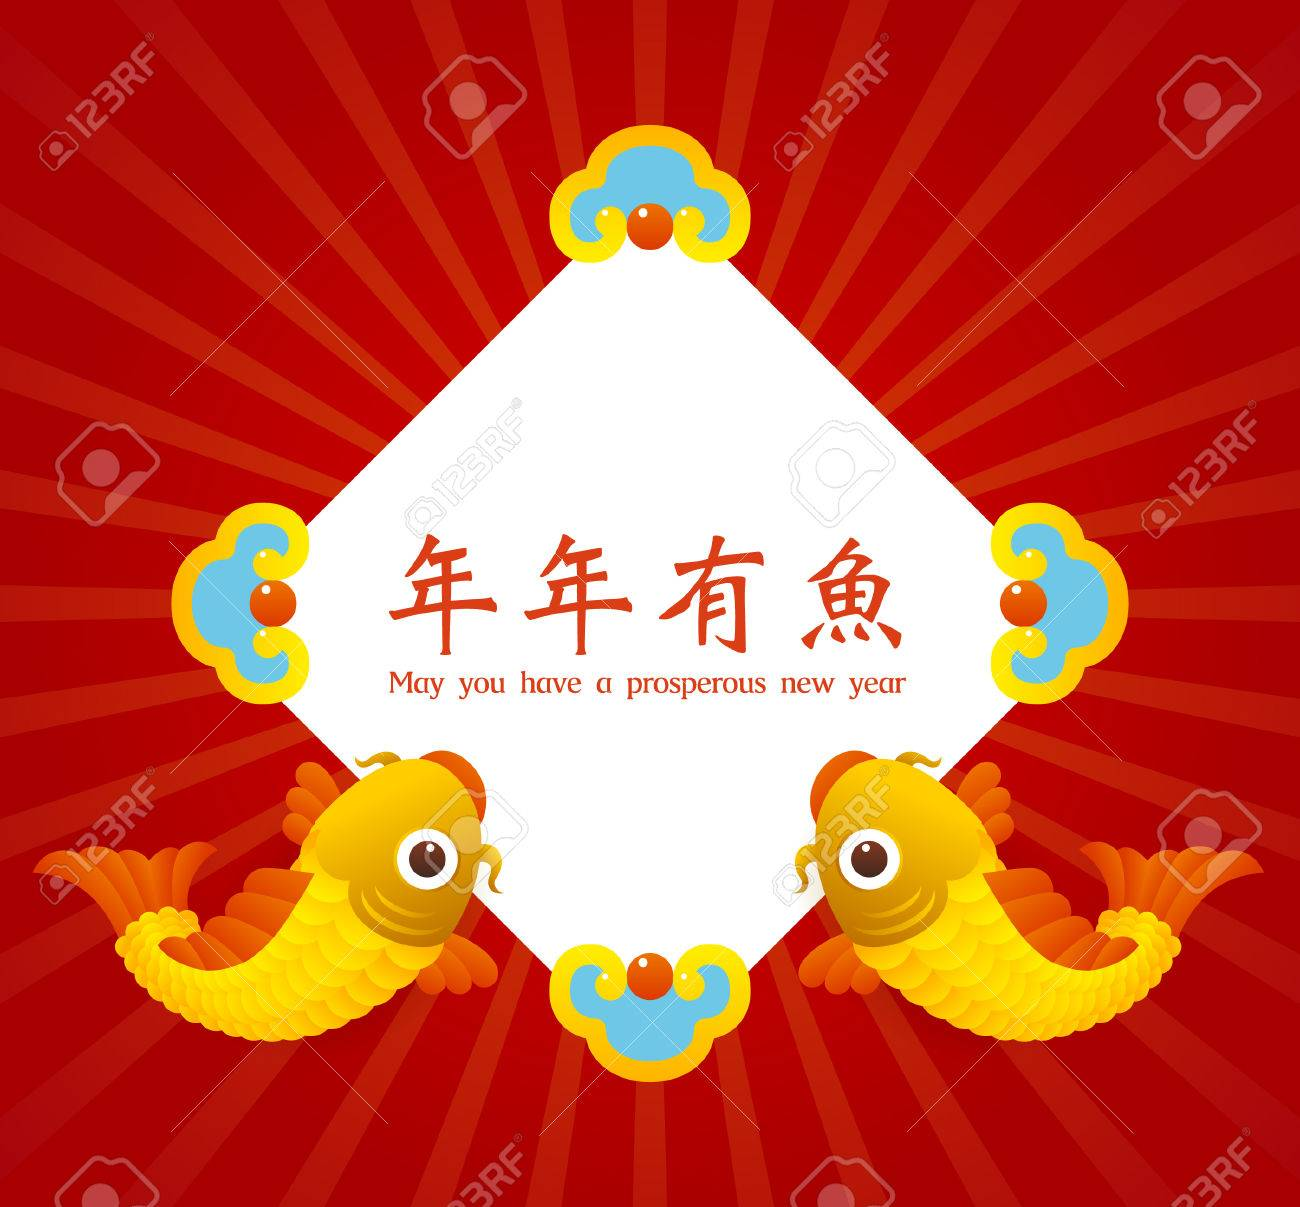 Happy New Year Chinese Characters And The Symbol Of Happiness